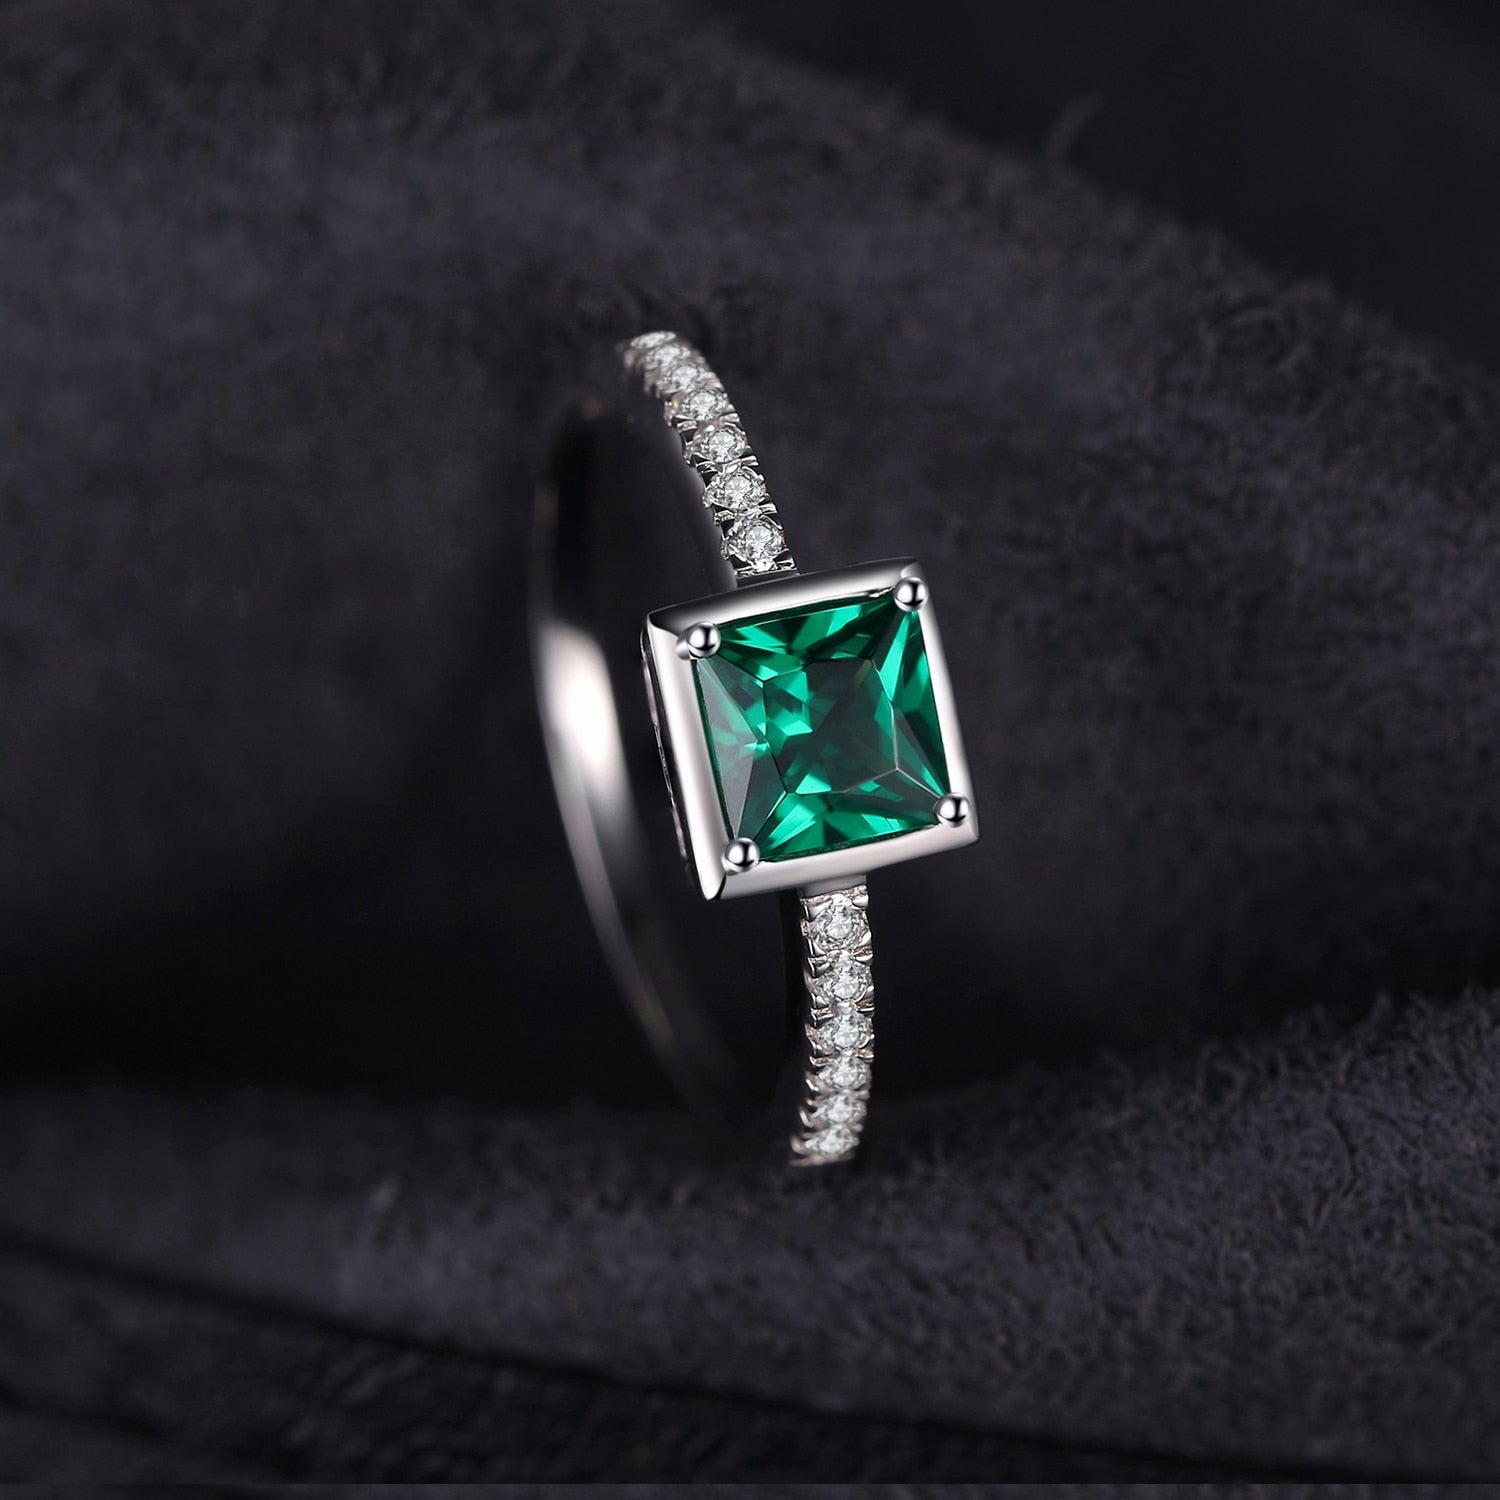 Square Created Nano Emerald Ring Engagement Ring - RHEA LIGHT